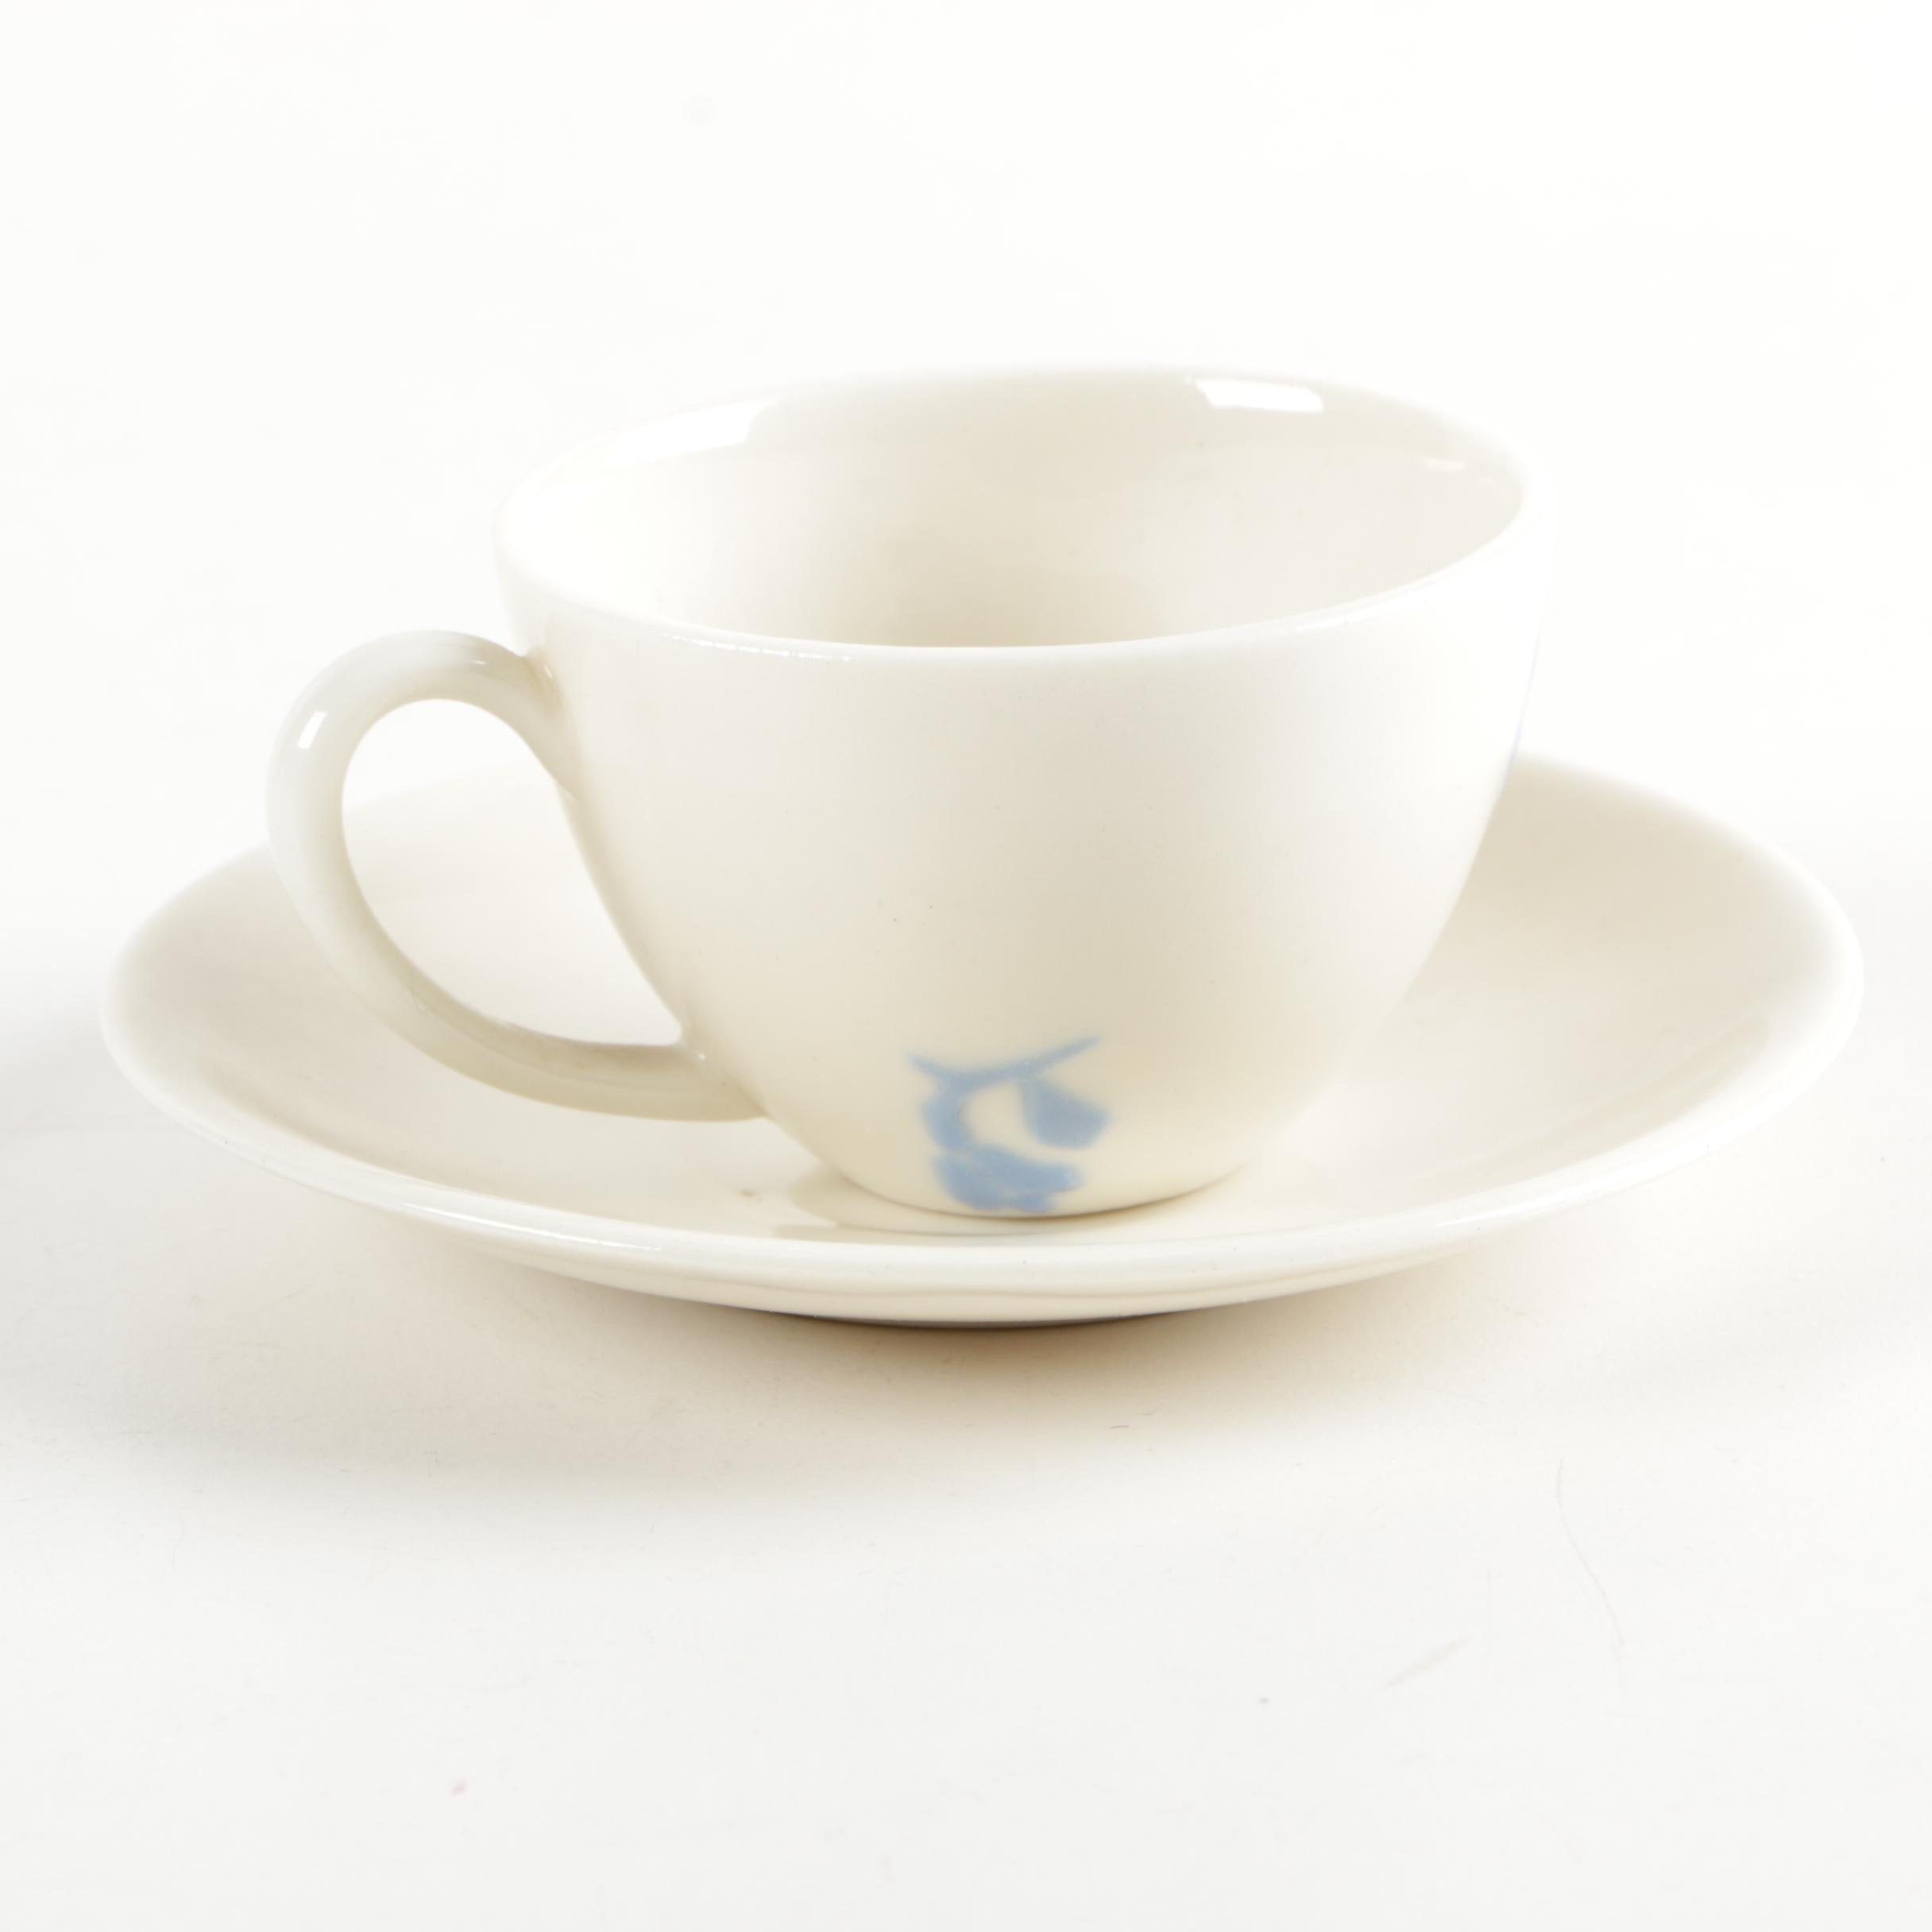 Rookwood Pottery Cup and Saucer